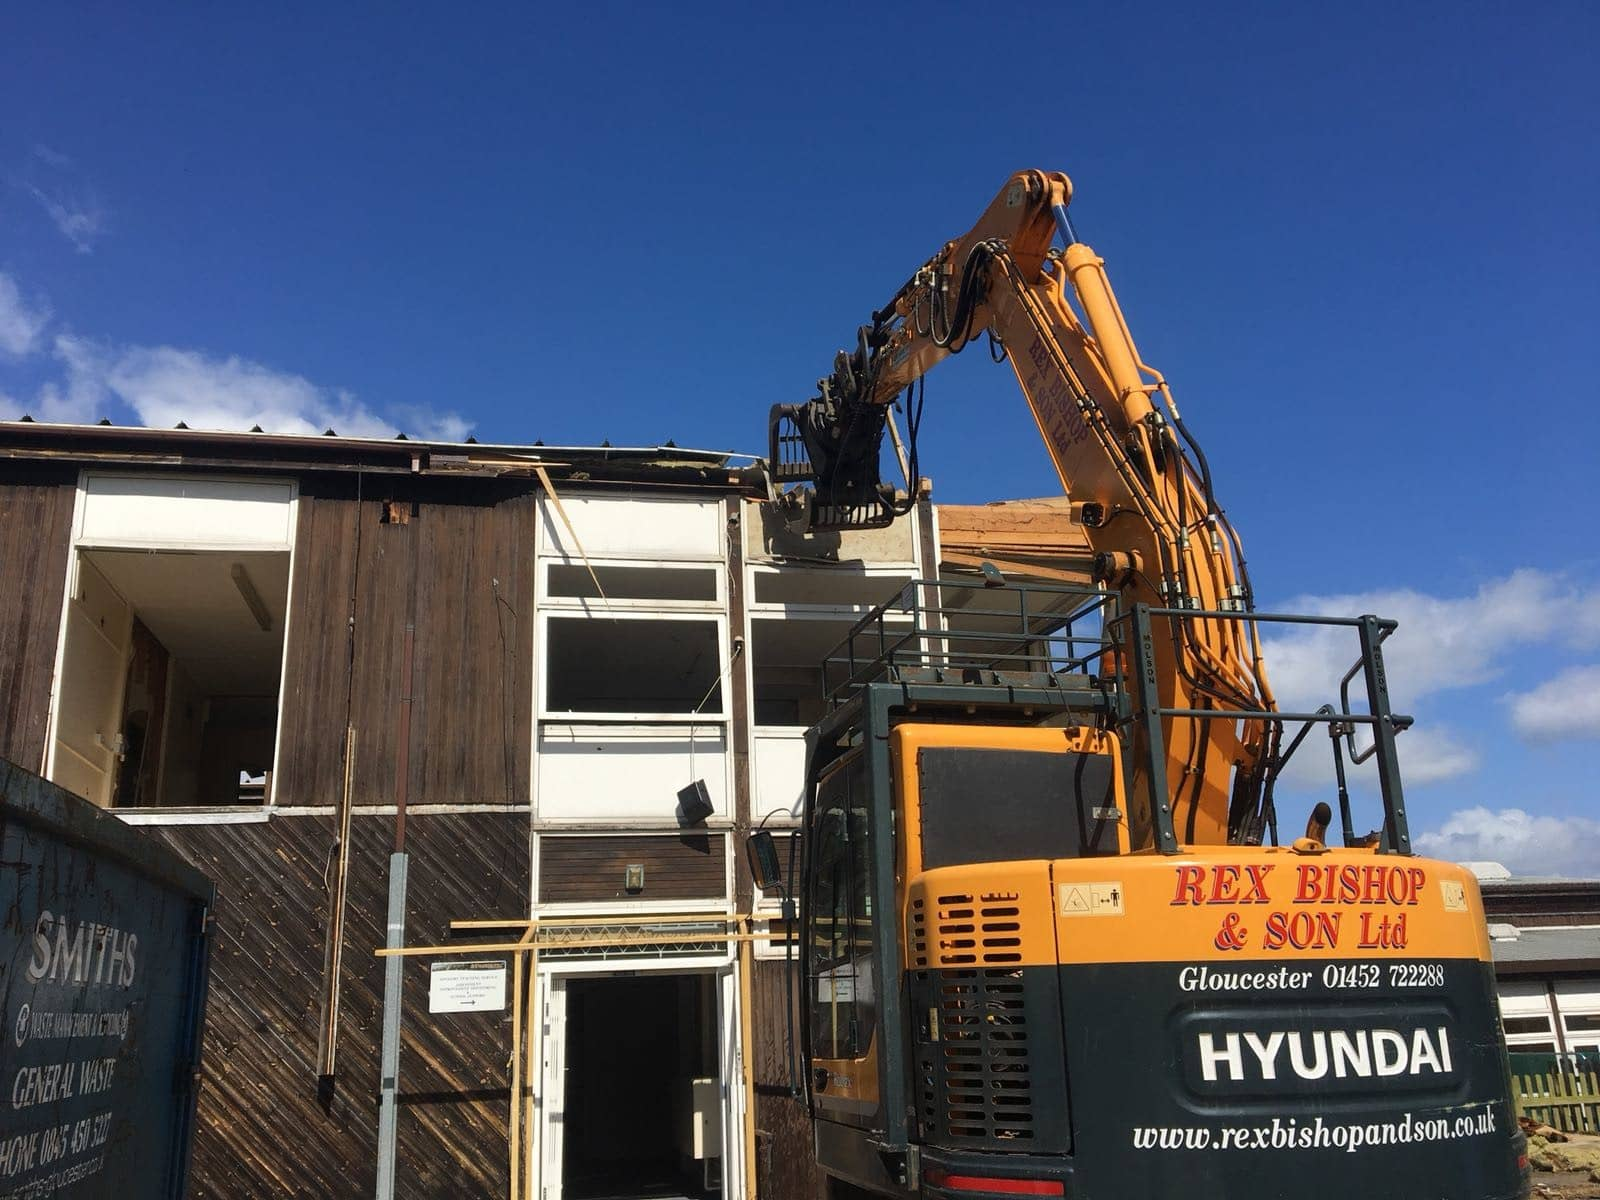 Digger ripping down the roof outside of the moat school building